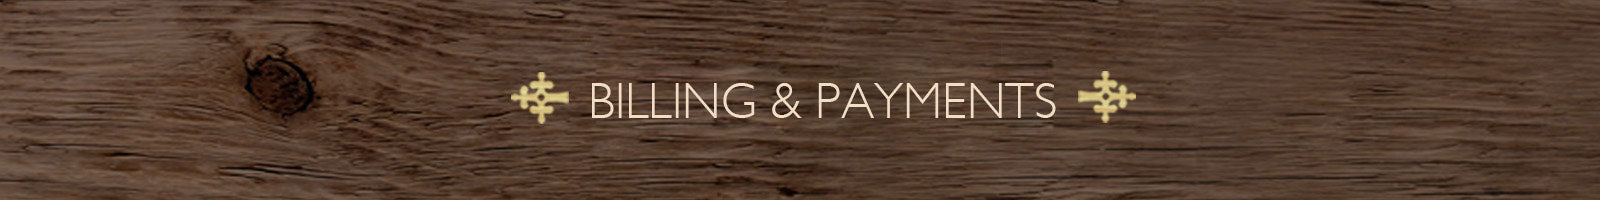 Billing and Payments - The India Craft House